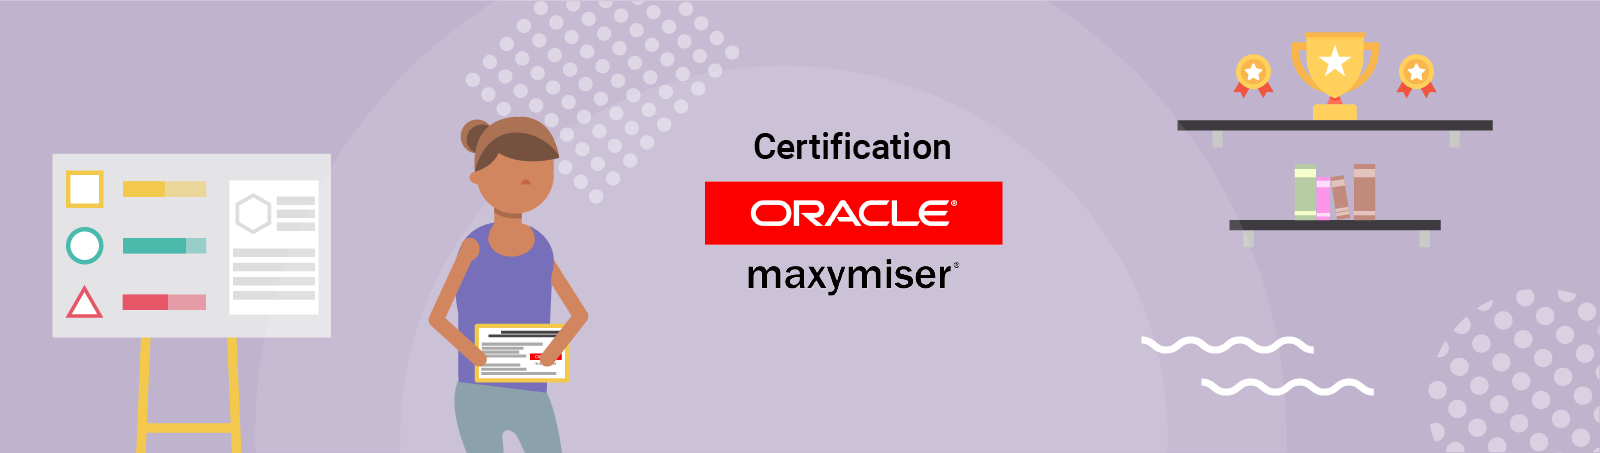 certification maxymiser